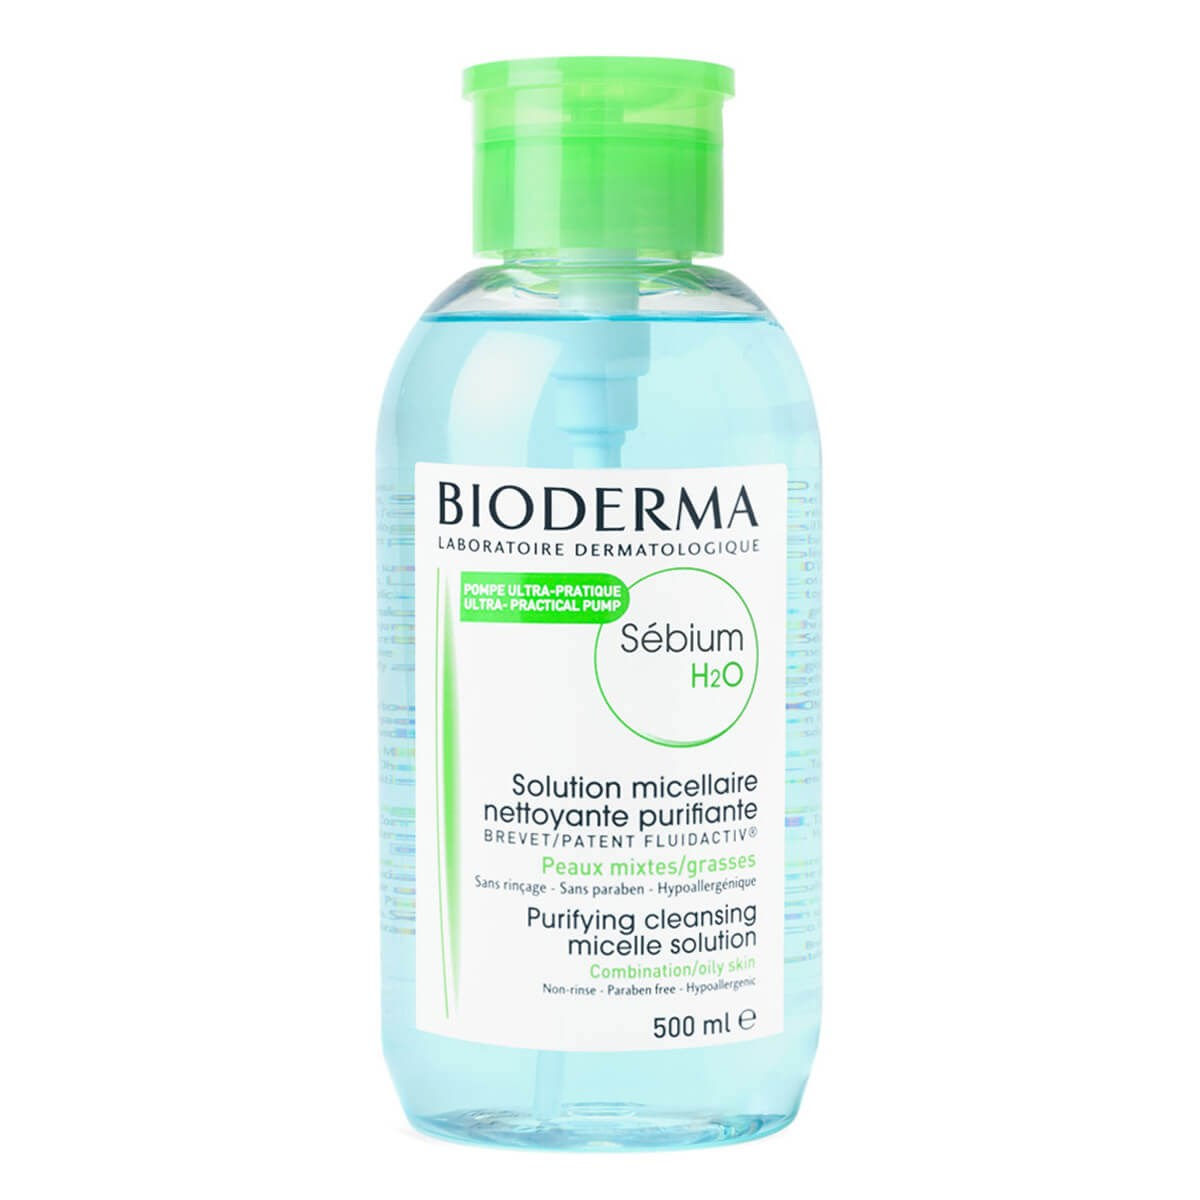 Bioderma Sébium H2O Purifying Cleansing Micelle Solution 500ml